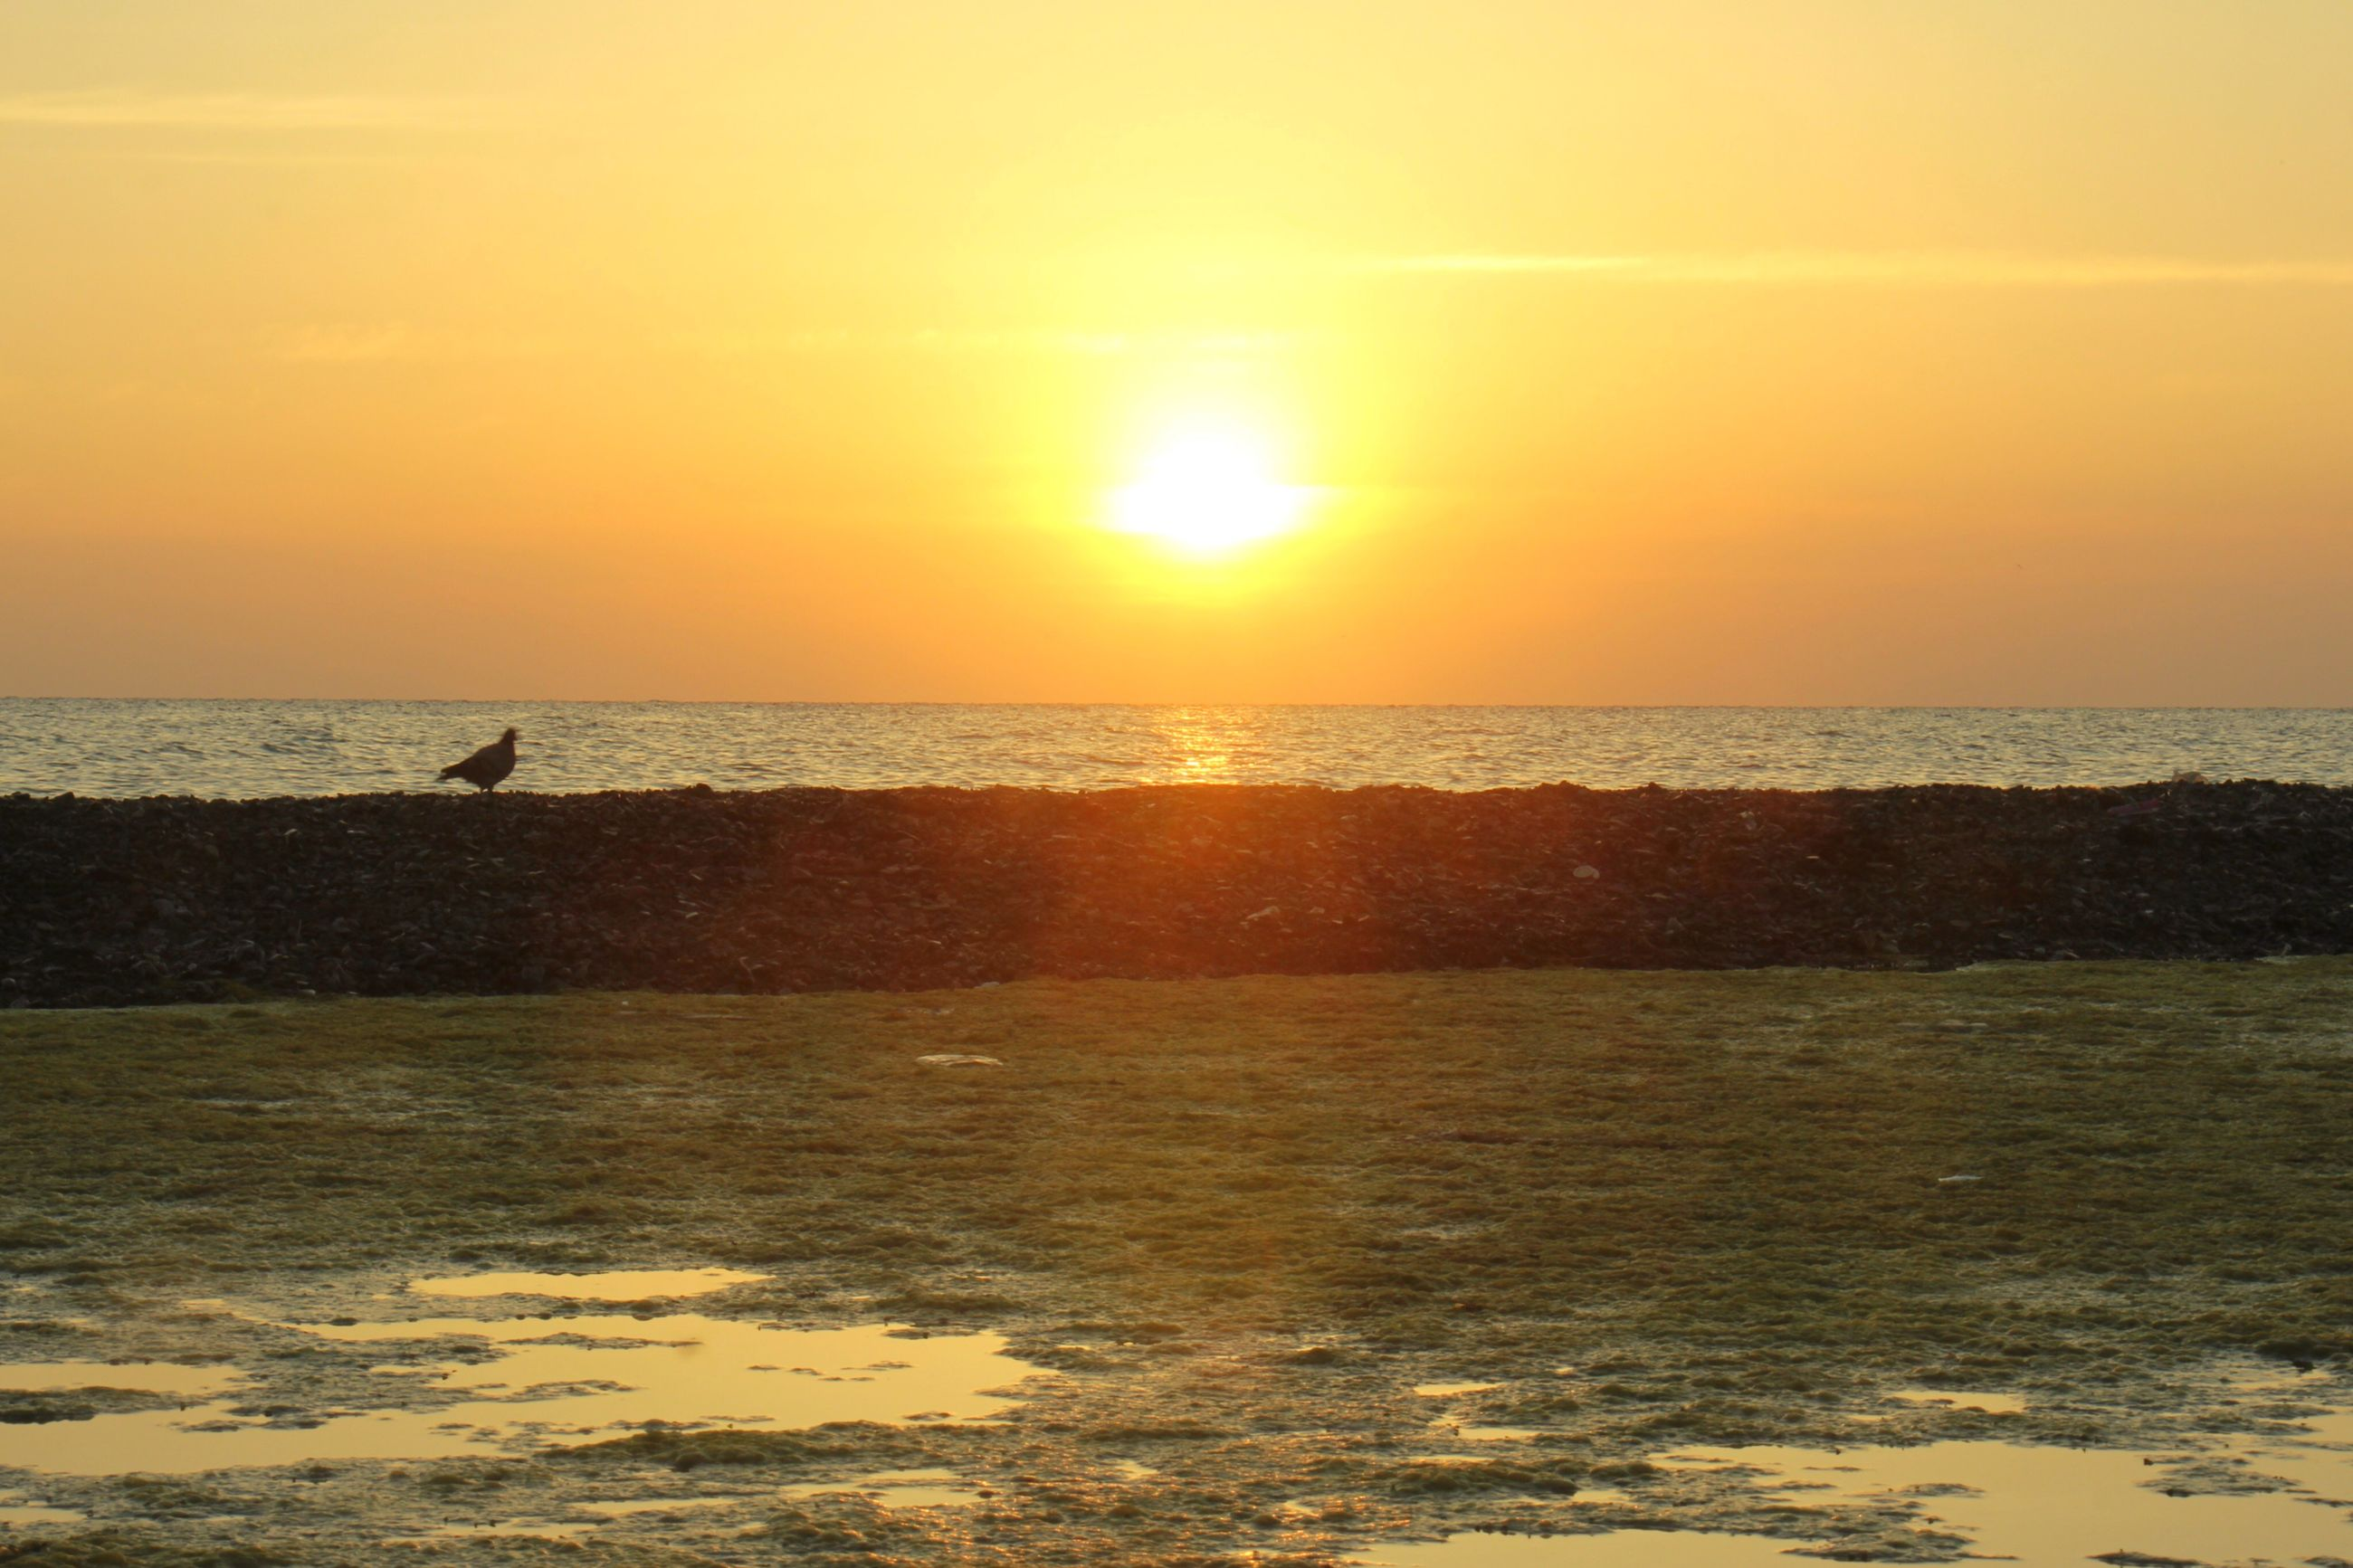 sea, sunset, horizon over water, water, scenics, sun, beauty in nature, nature, beach, tranquility, silhouette, sky, orange color, tranquil scene, idyllic, sunlight, reflection, outdoors, no people, vacations, day